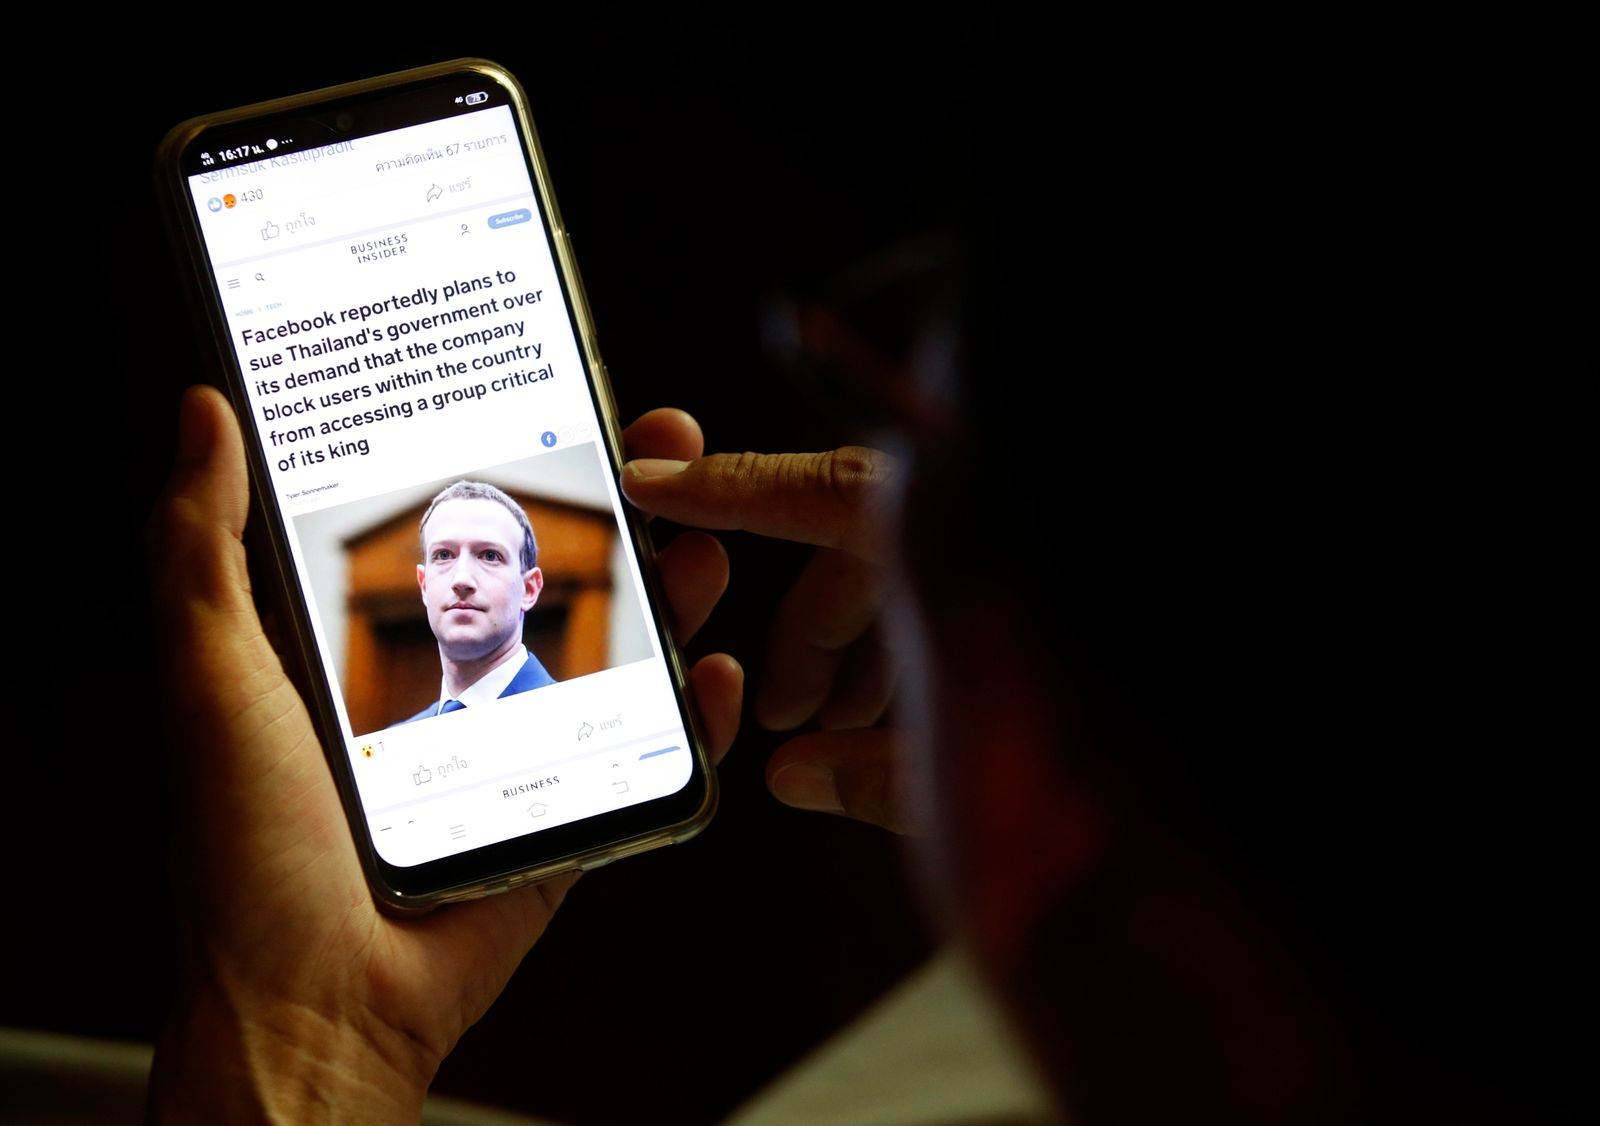 Facebook prepares legally action against Thai government after demand to block a monarchy critic group, Bangkok, Thailand - 25 Aug 2020